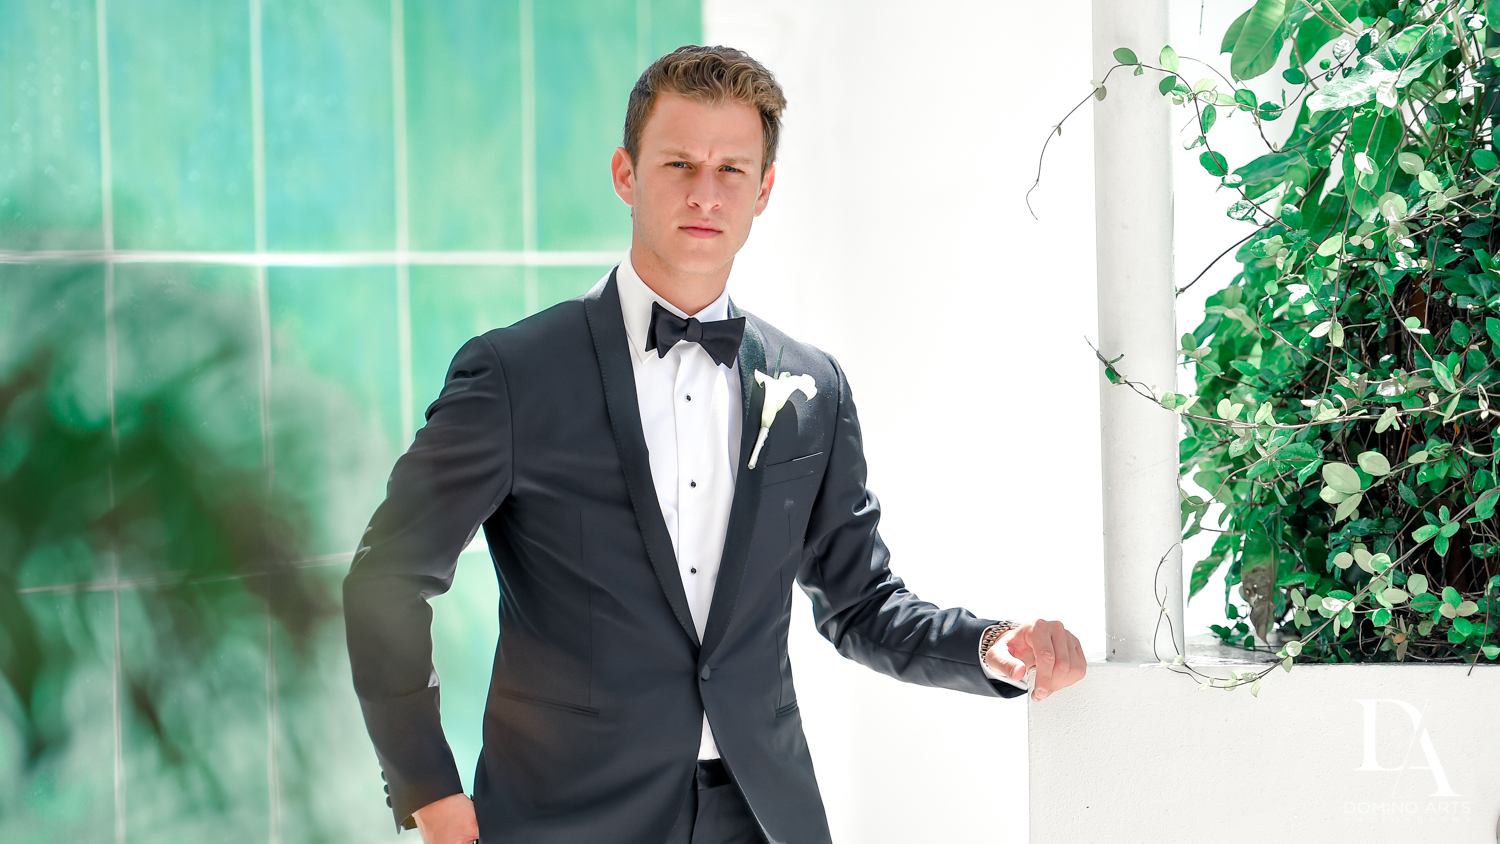 Classic wedding picture of groom at Faena Hotel Miami Beach